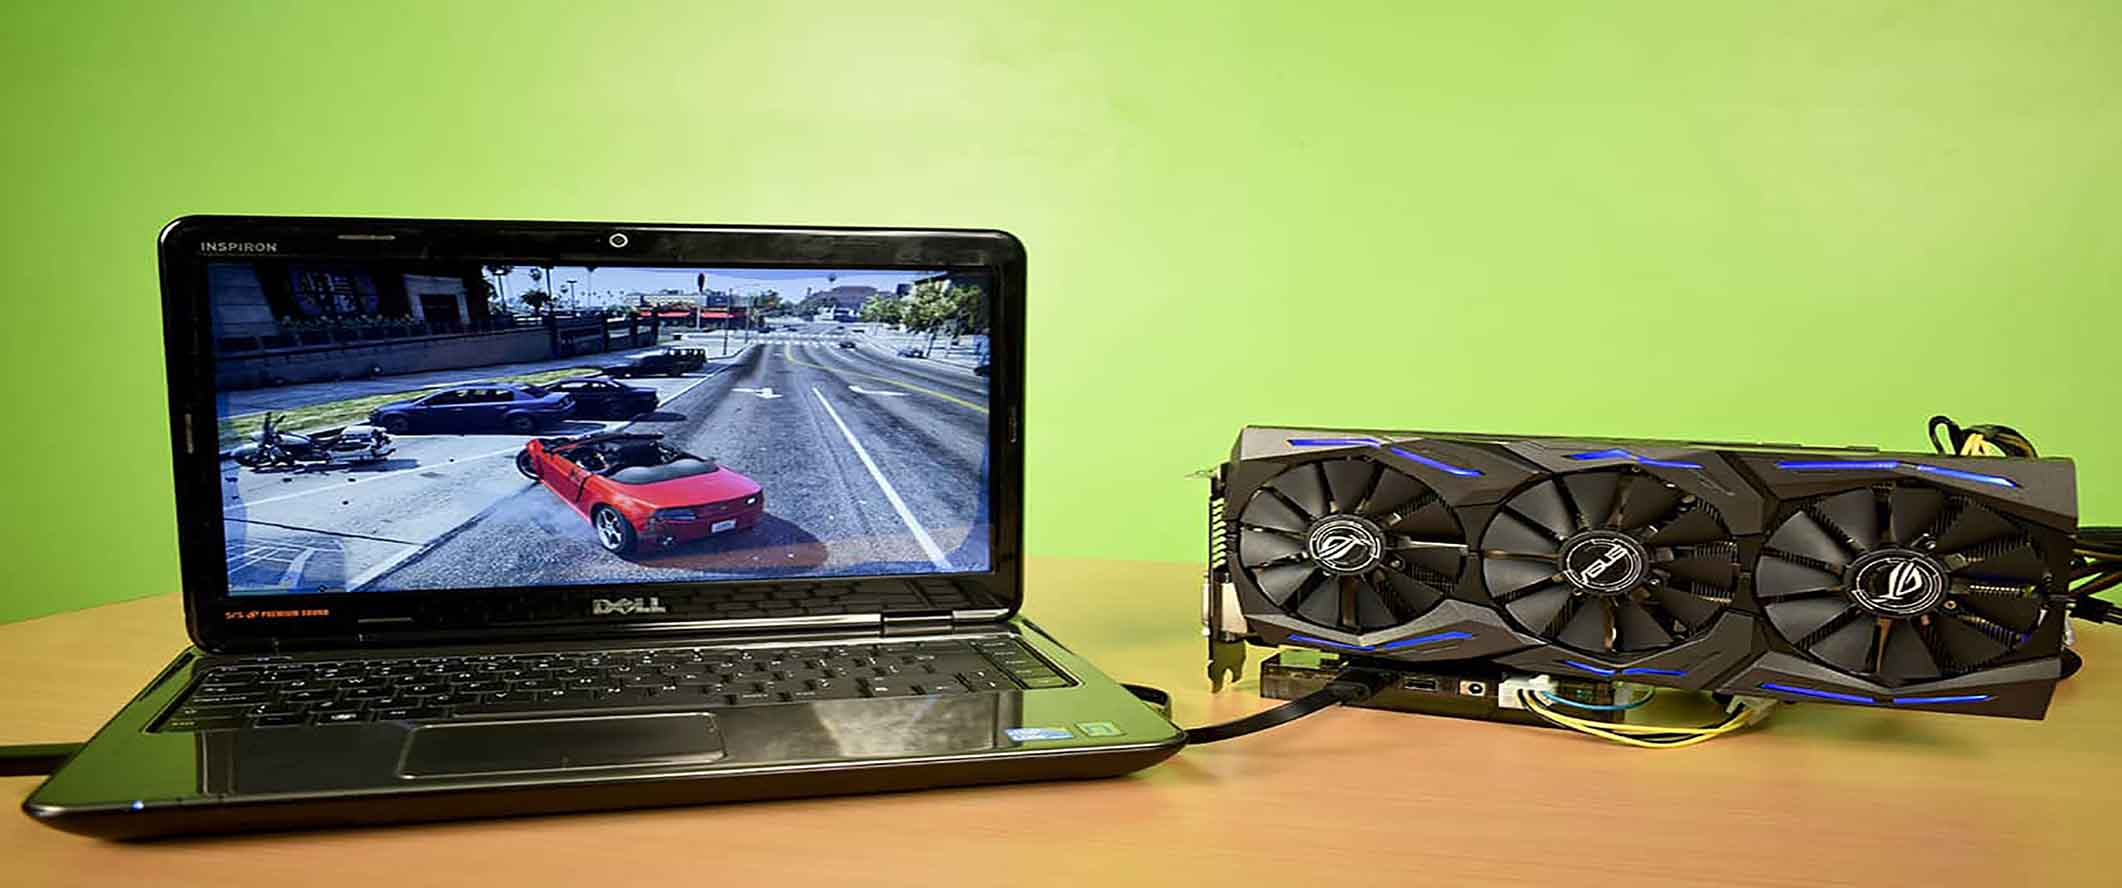 Graphics-Card-for-Laptop-eGPU-Setup-Guide